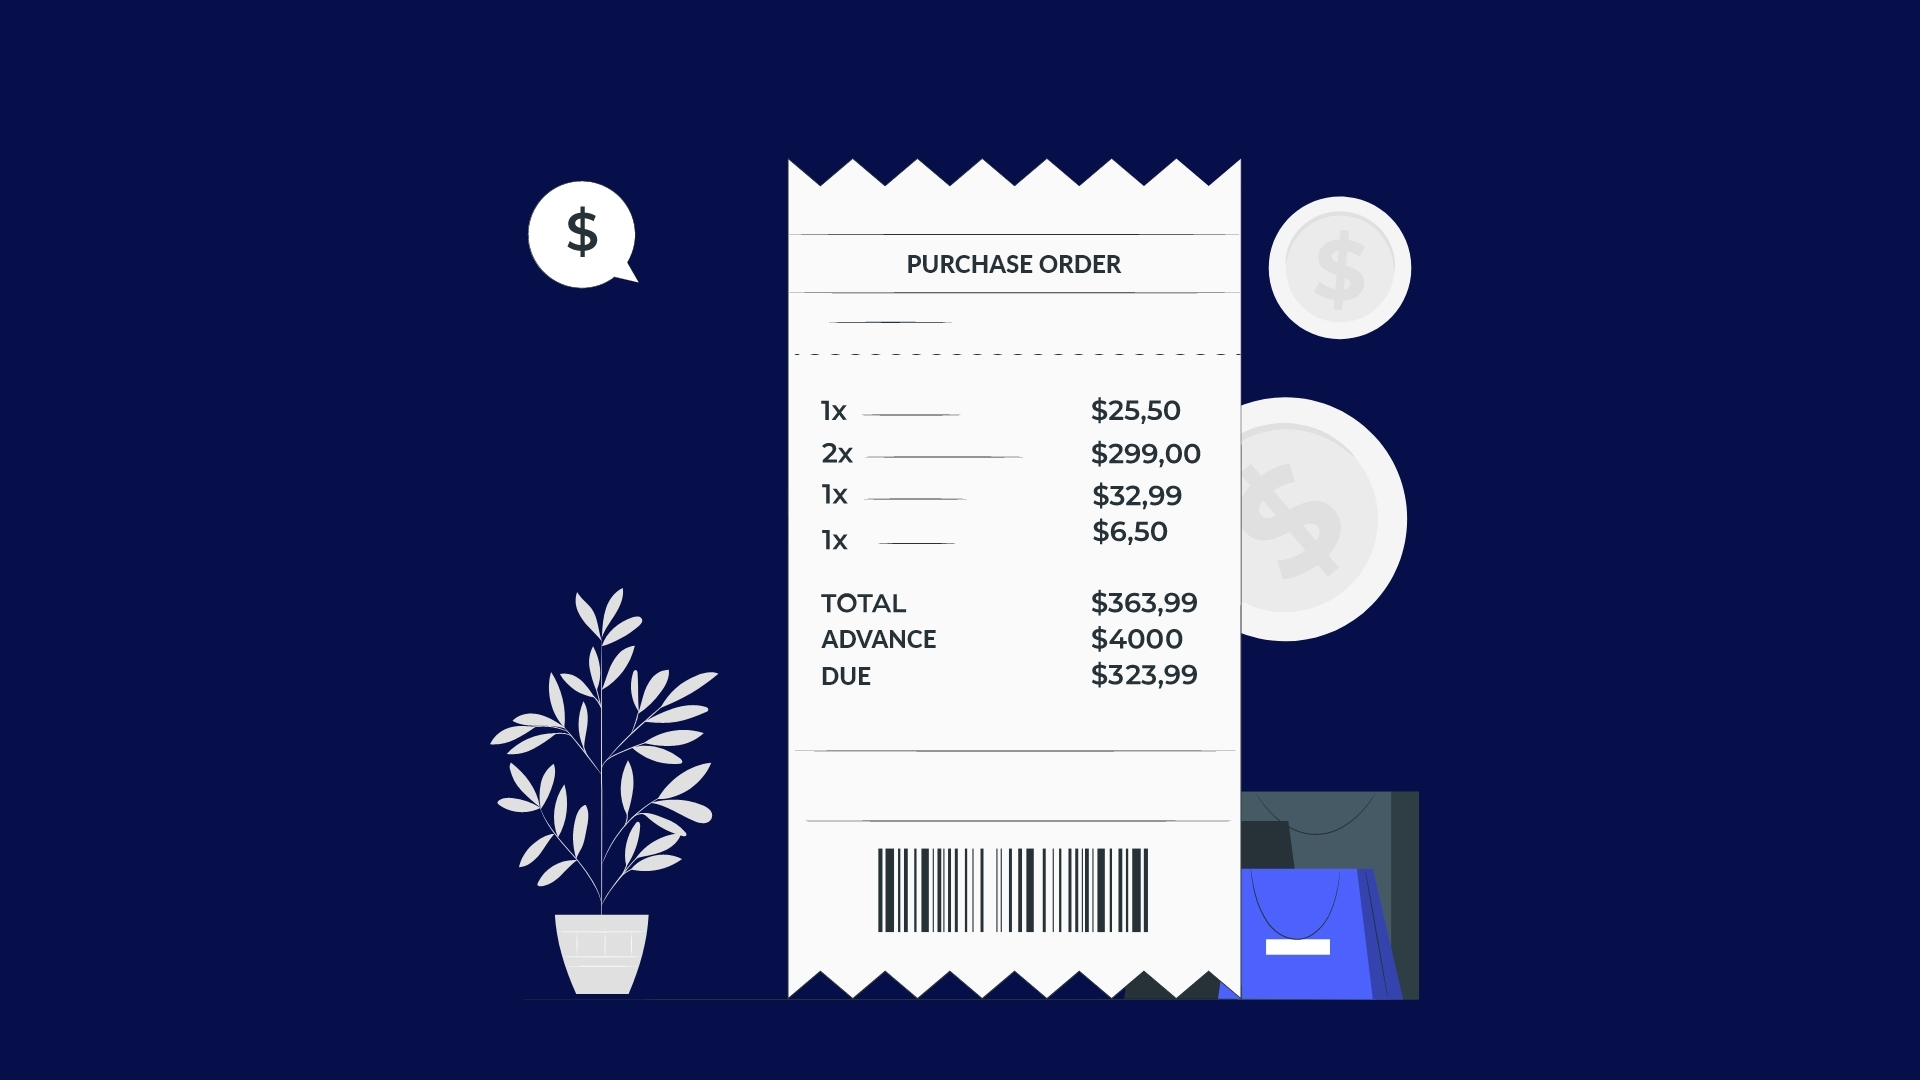 Does Your Business Need to Invest in Purchase Order System? Here's What You Need to Know!